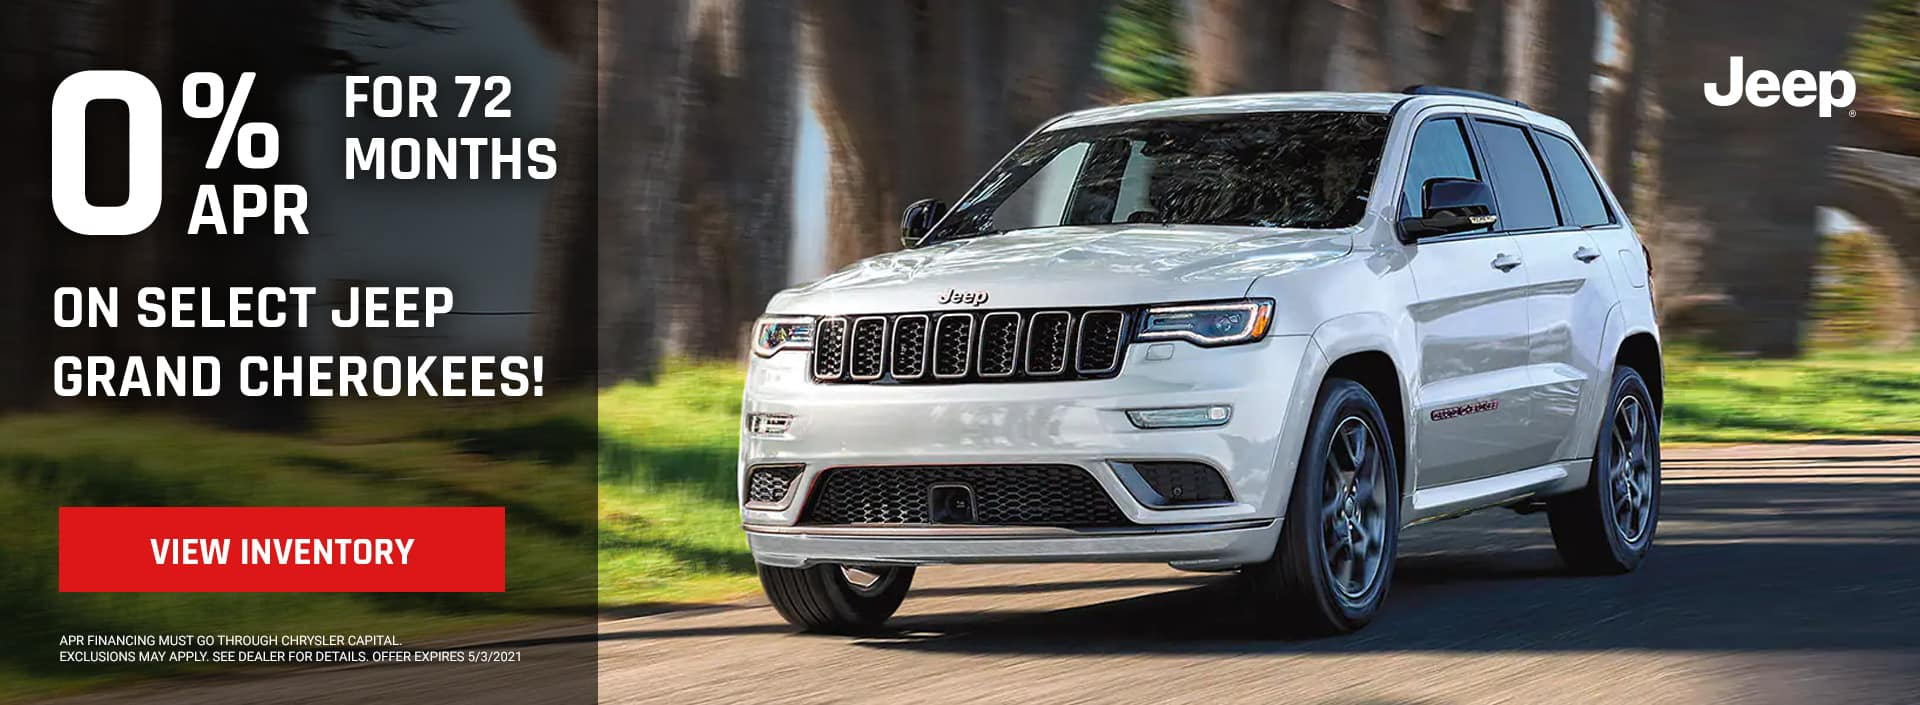 0% for 72 Months on select Jeep Grand Cherokees